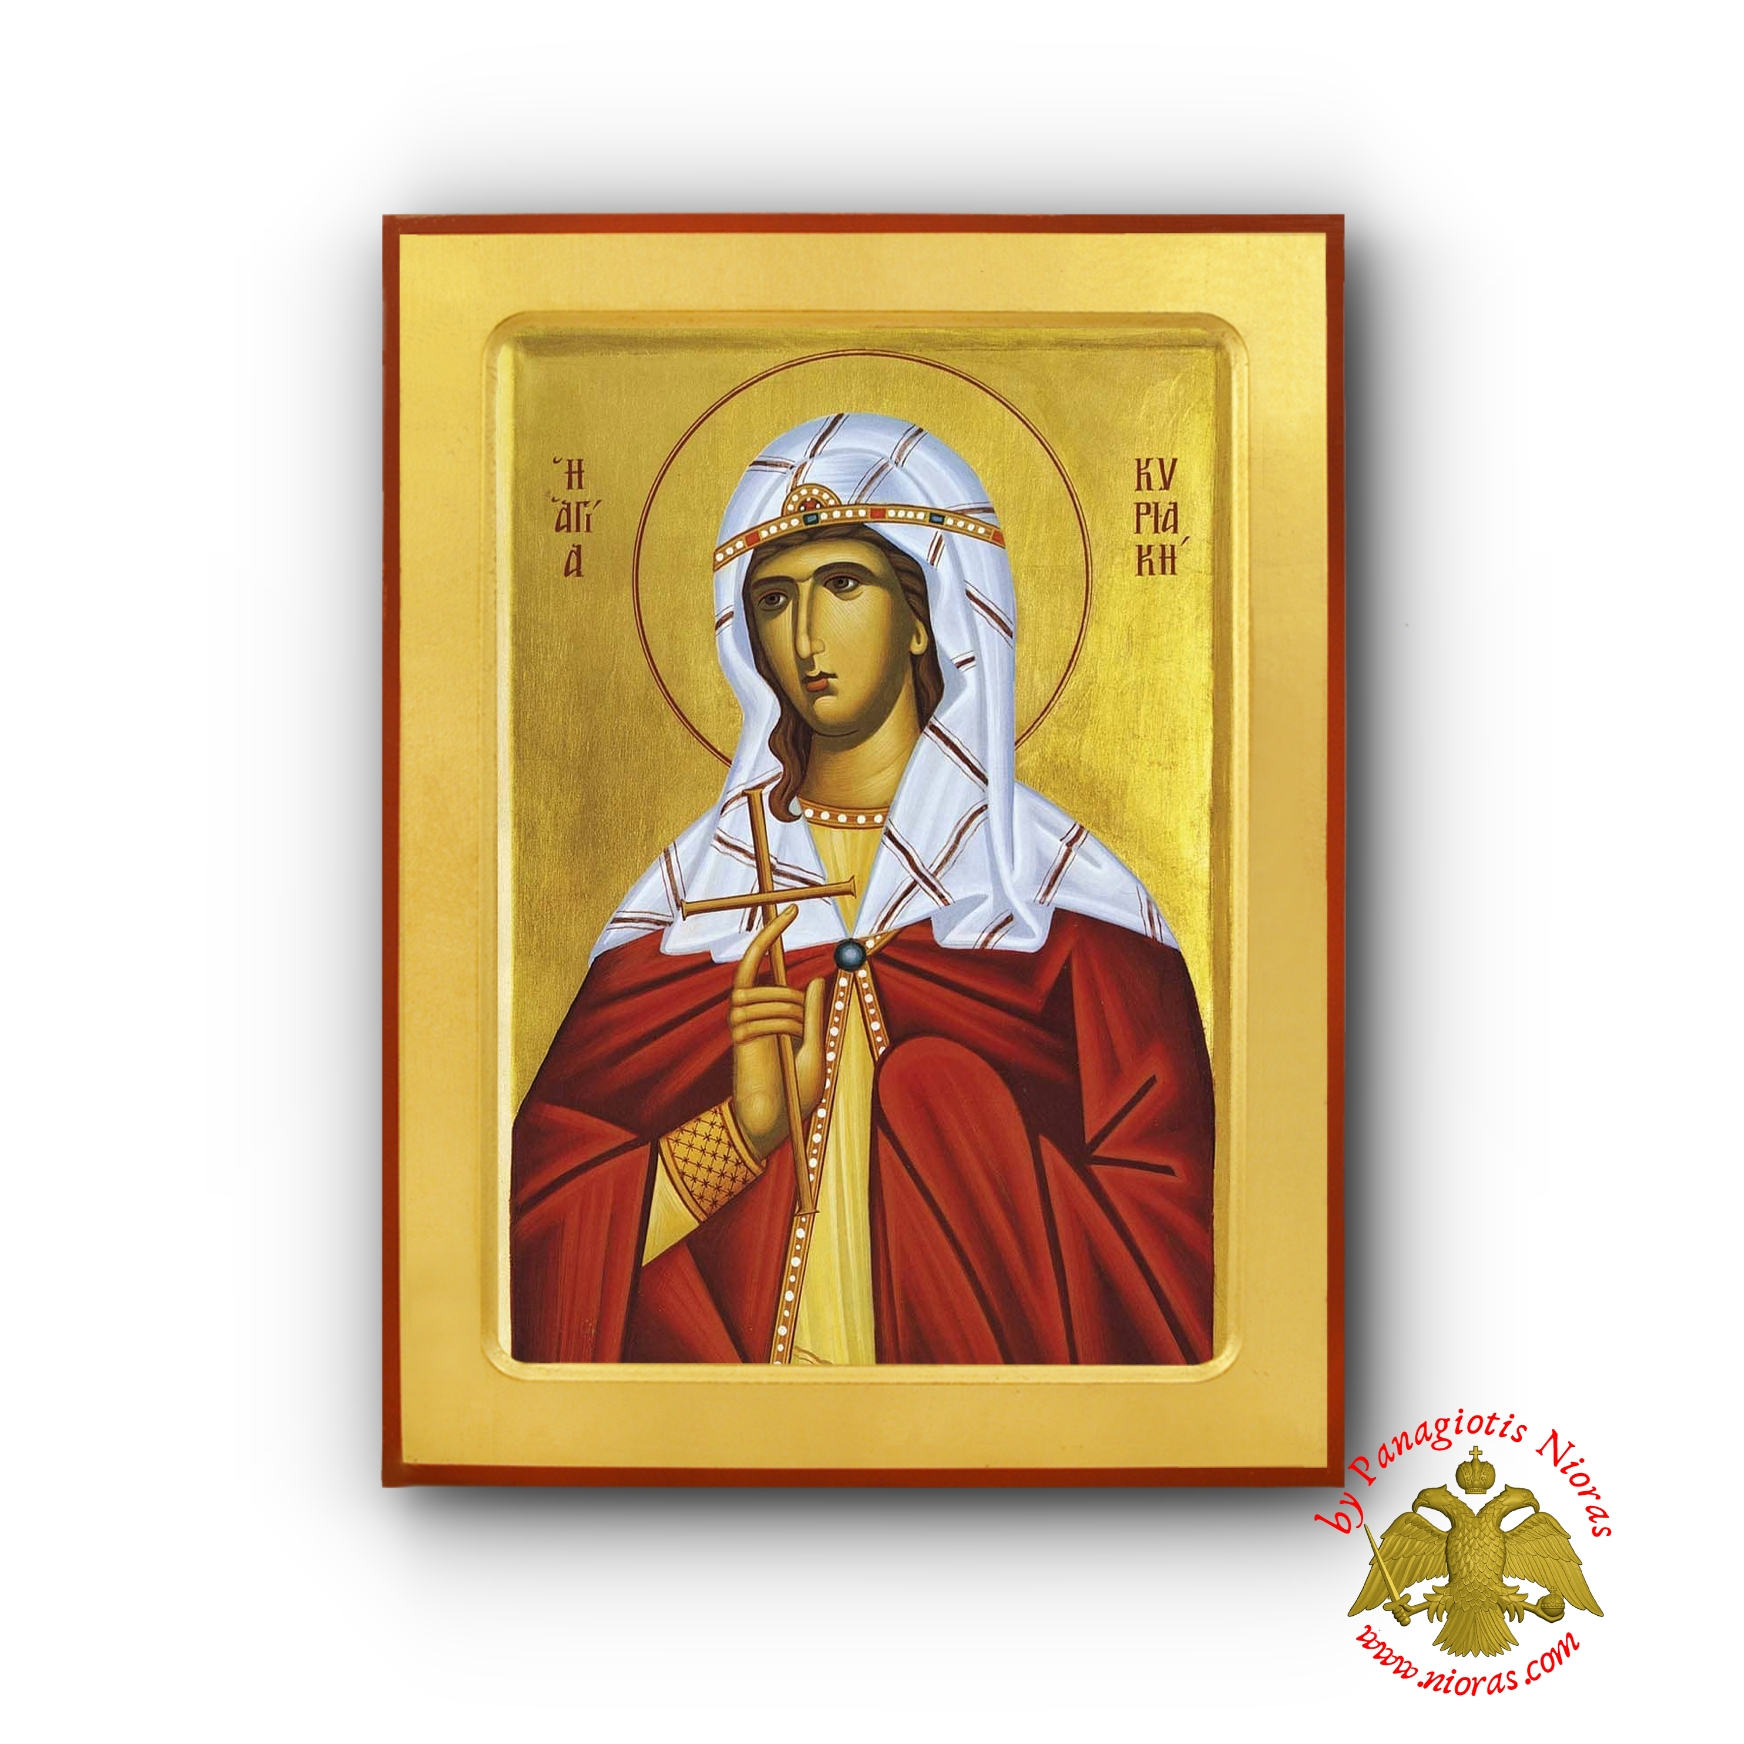 Saint Cyriaca Byzantine Wooden Icon by Nun Kassiani